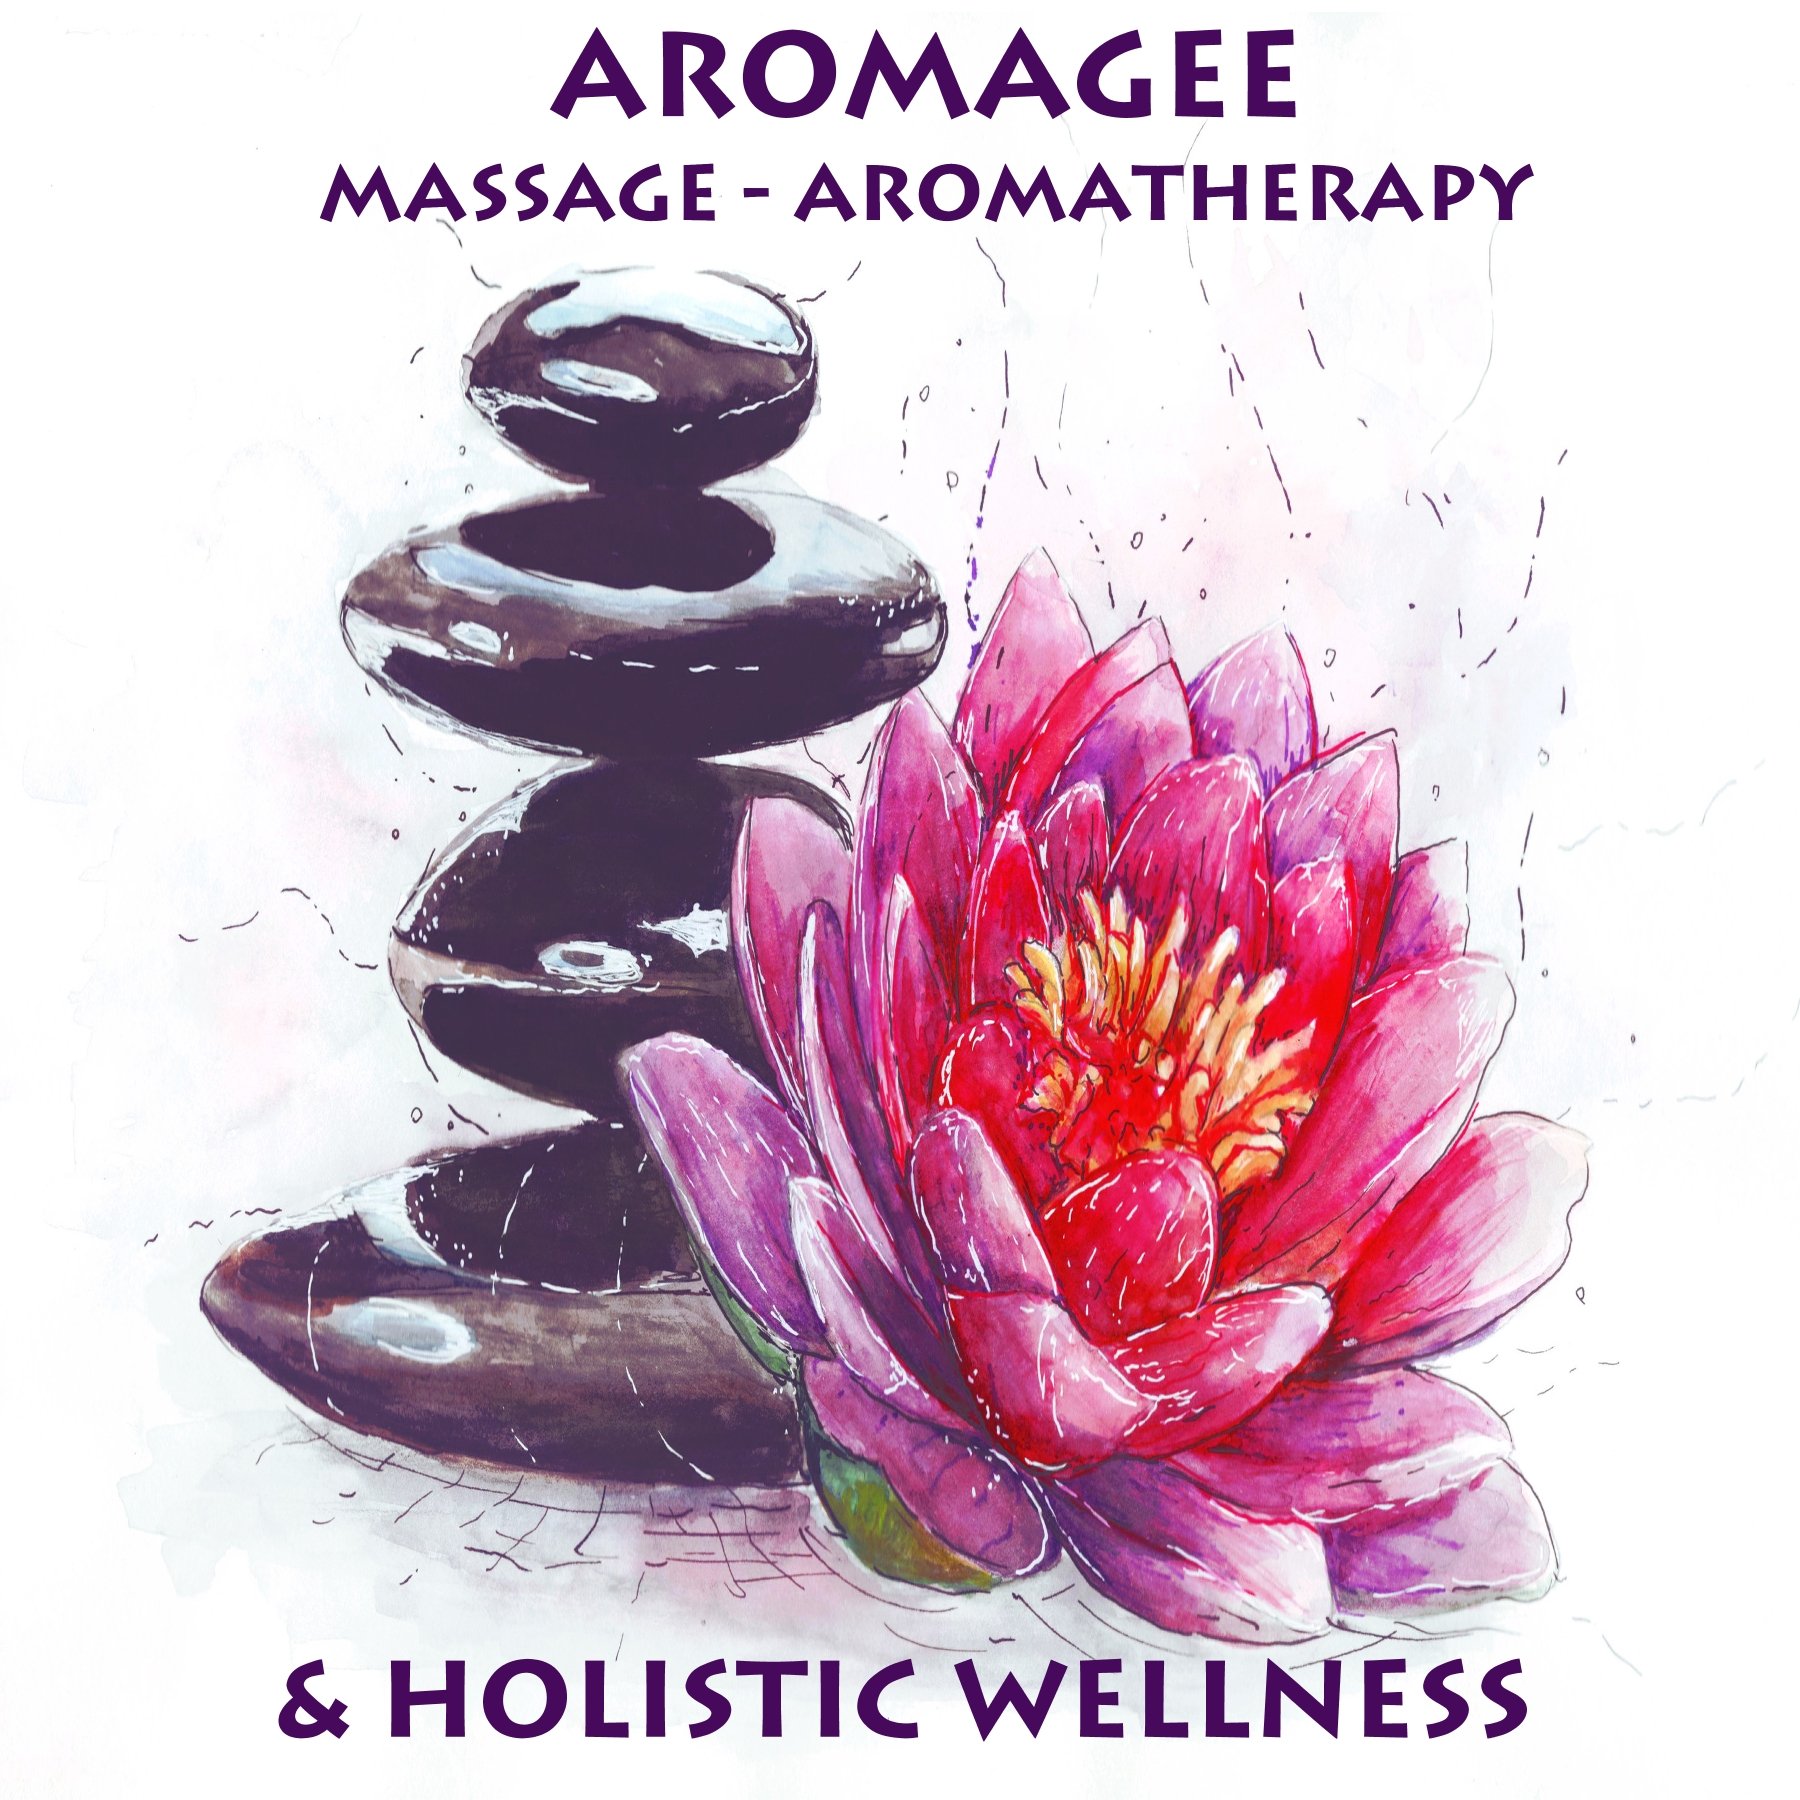 image of the AromaGee Massage - Aromatherapy & Holistic Wellness